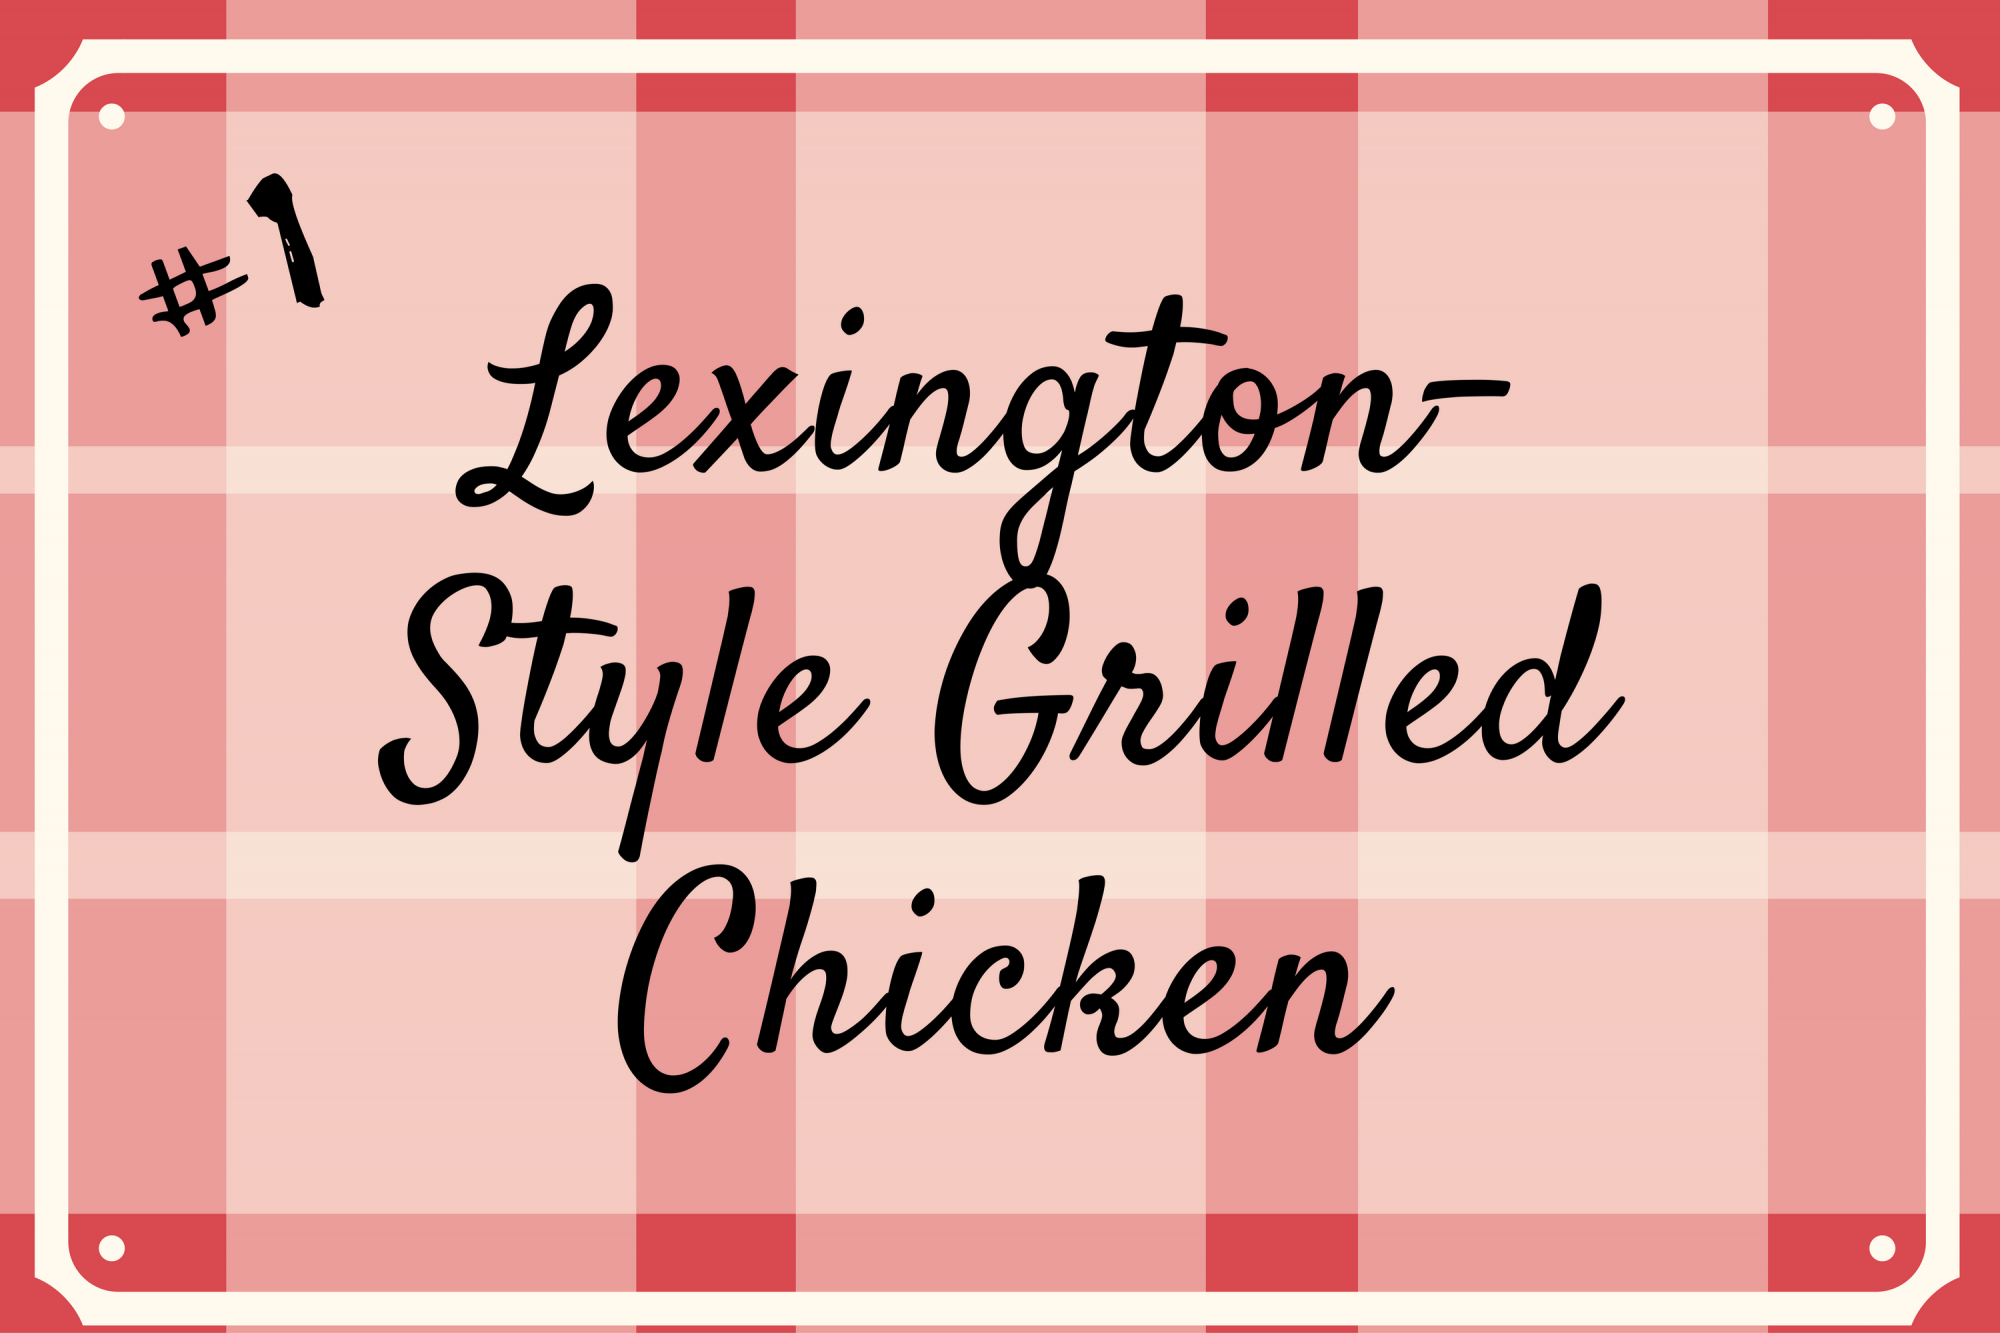 Lexington-Style Grilled Chicken